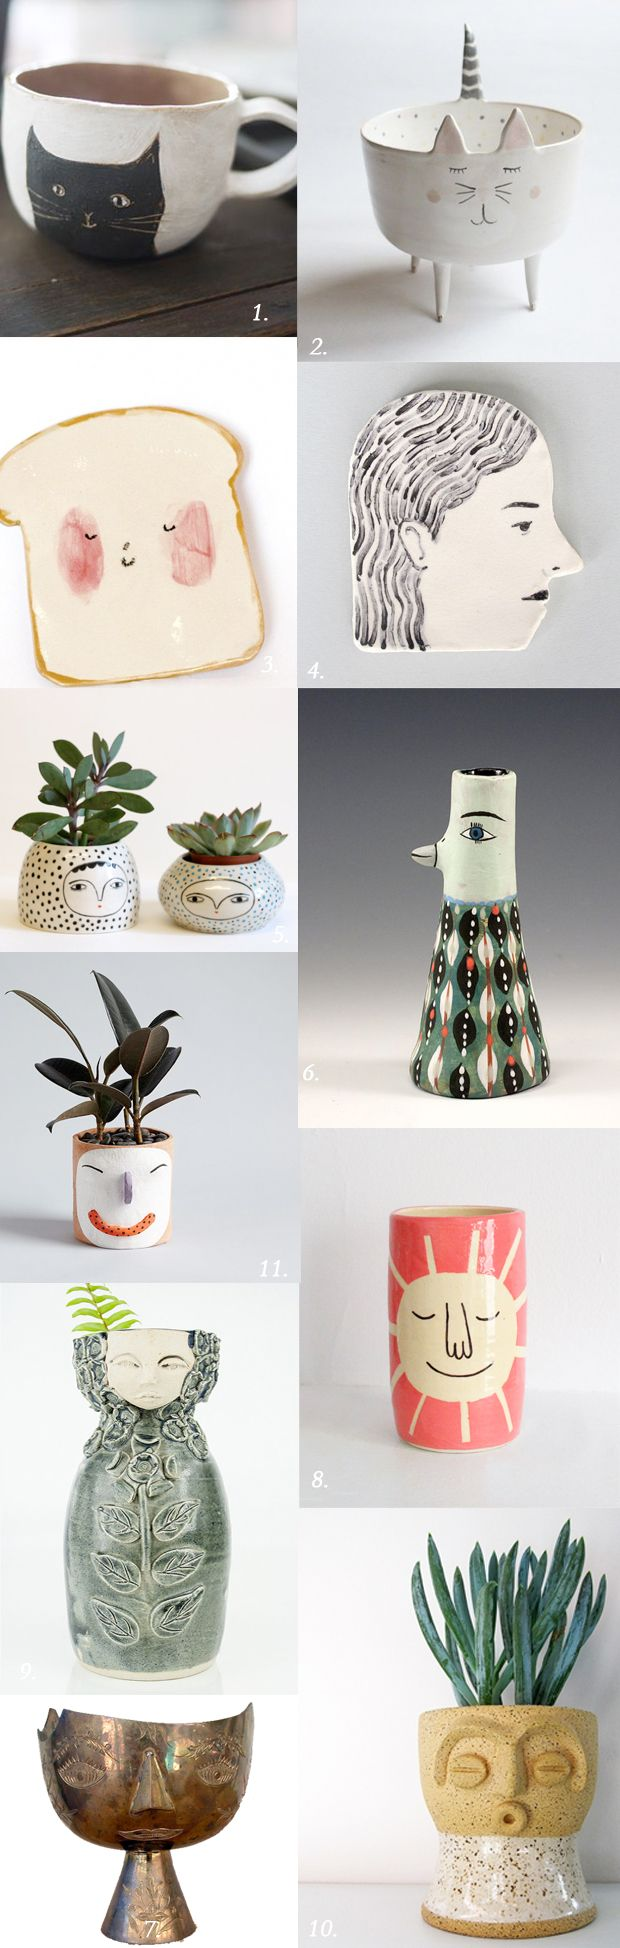 thrilled our artist-made Face Planter (#11) was included in Justina Blakeney's Vessels With Personality post :D